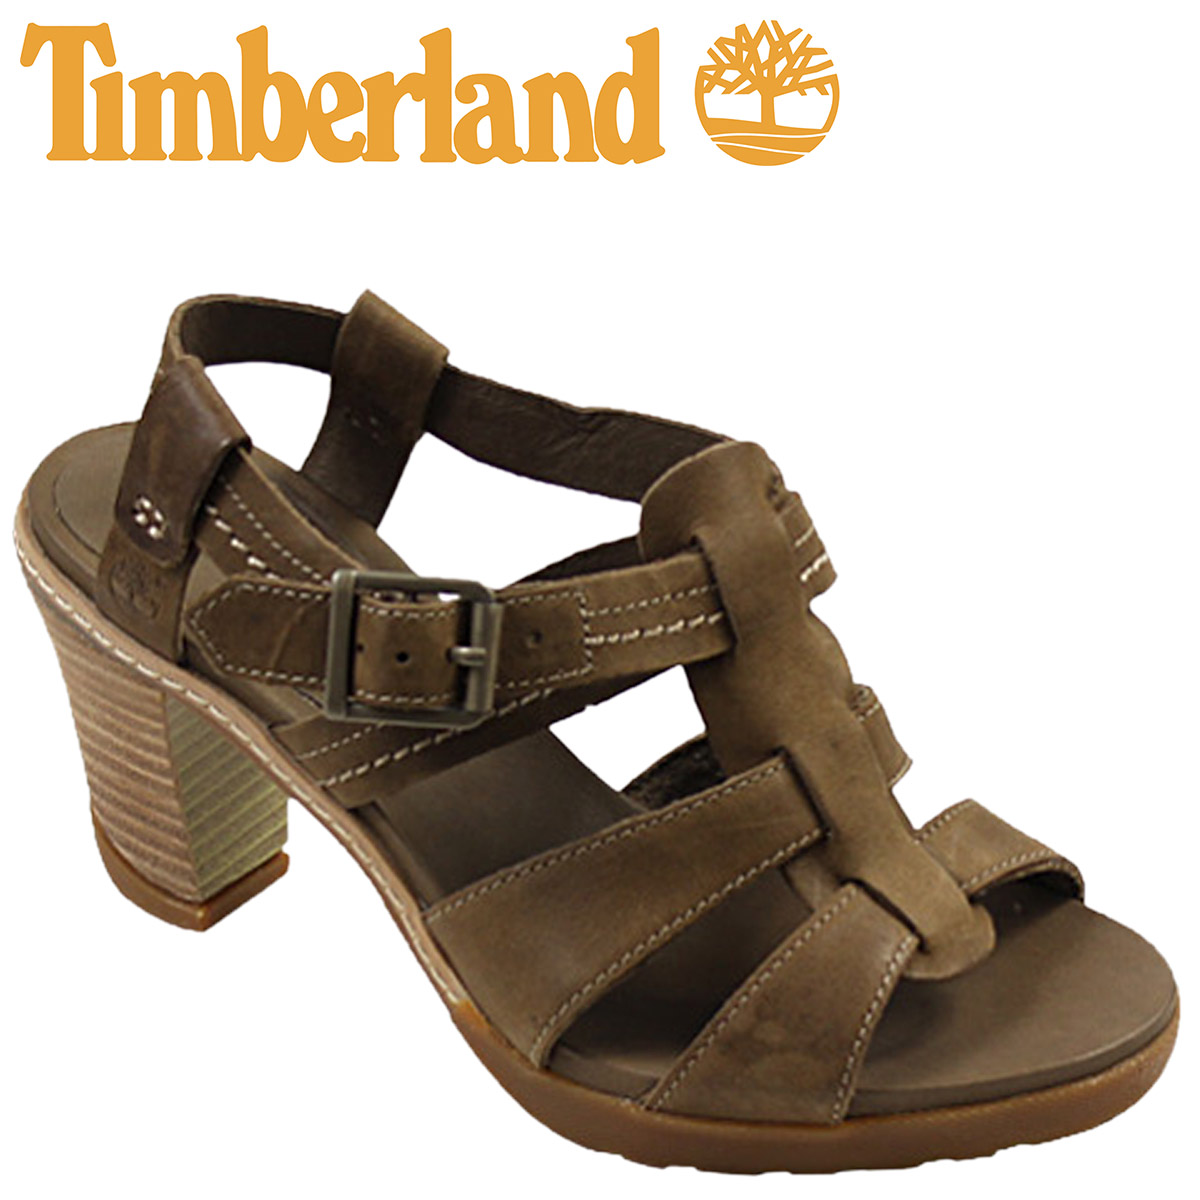 unique design outlet on sale wholesale dealer [SOLD OUT] Timberland Timberland Womens kids Earthkeepers Stratham heights  sandal ankle strap [Dark Brown] EK STRATHAM HEIGHT SDL ANK leather 8139R